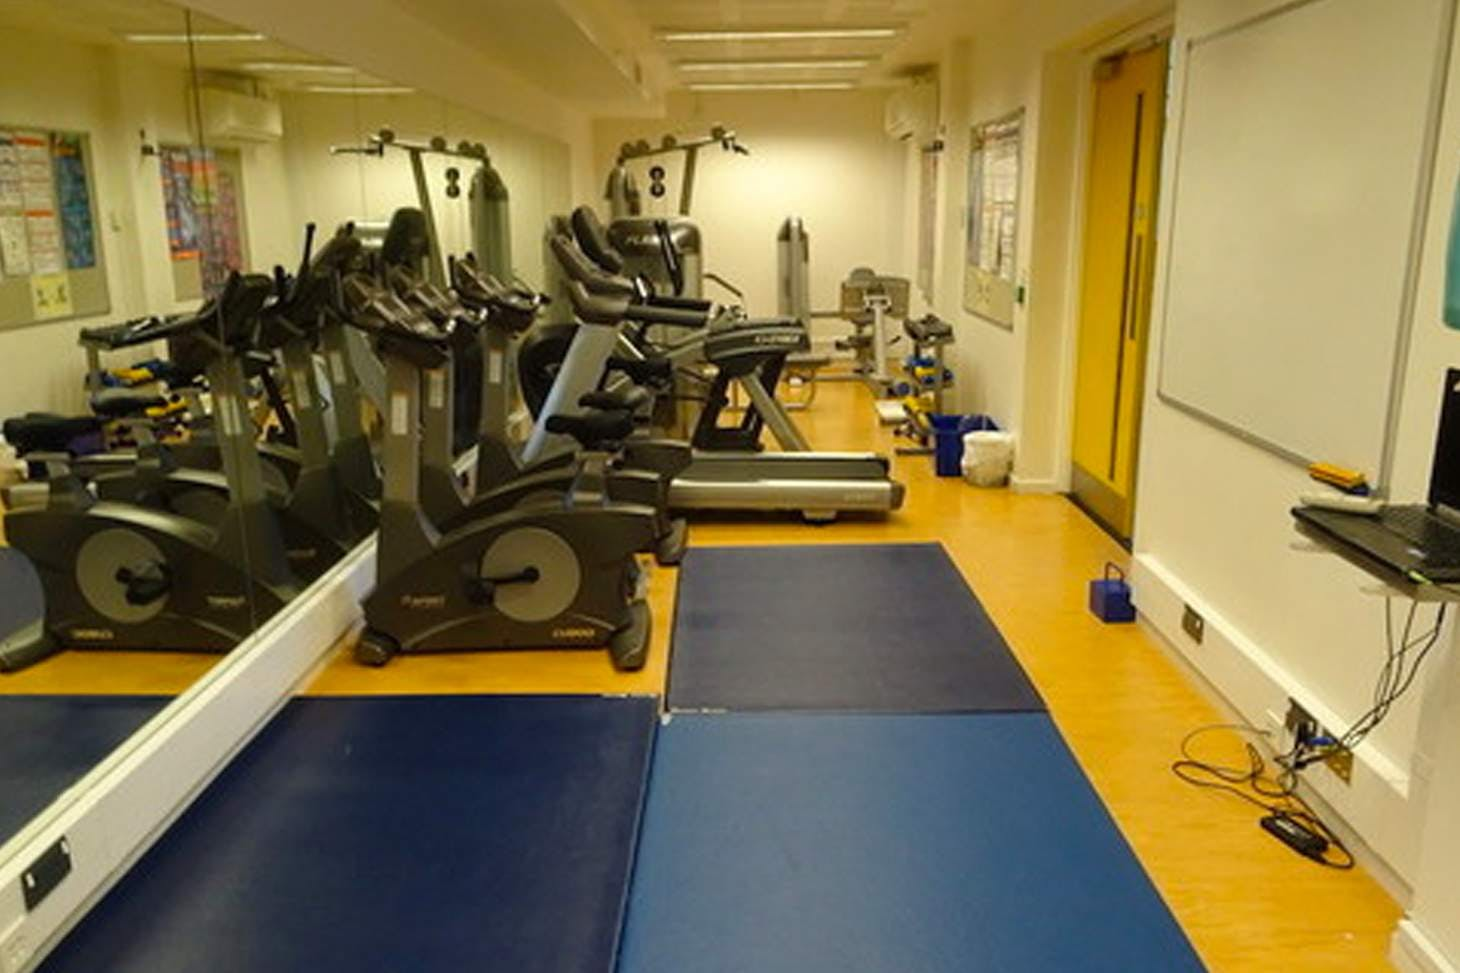 Our Lady's Convent High School Gym space hire